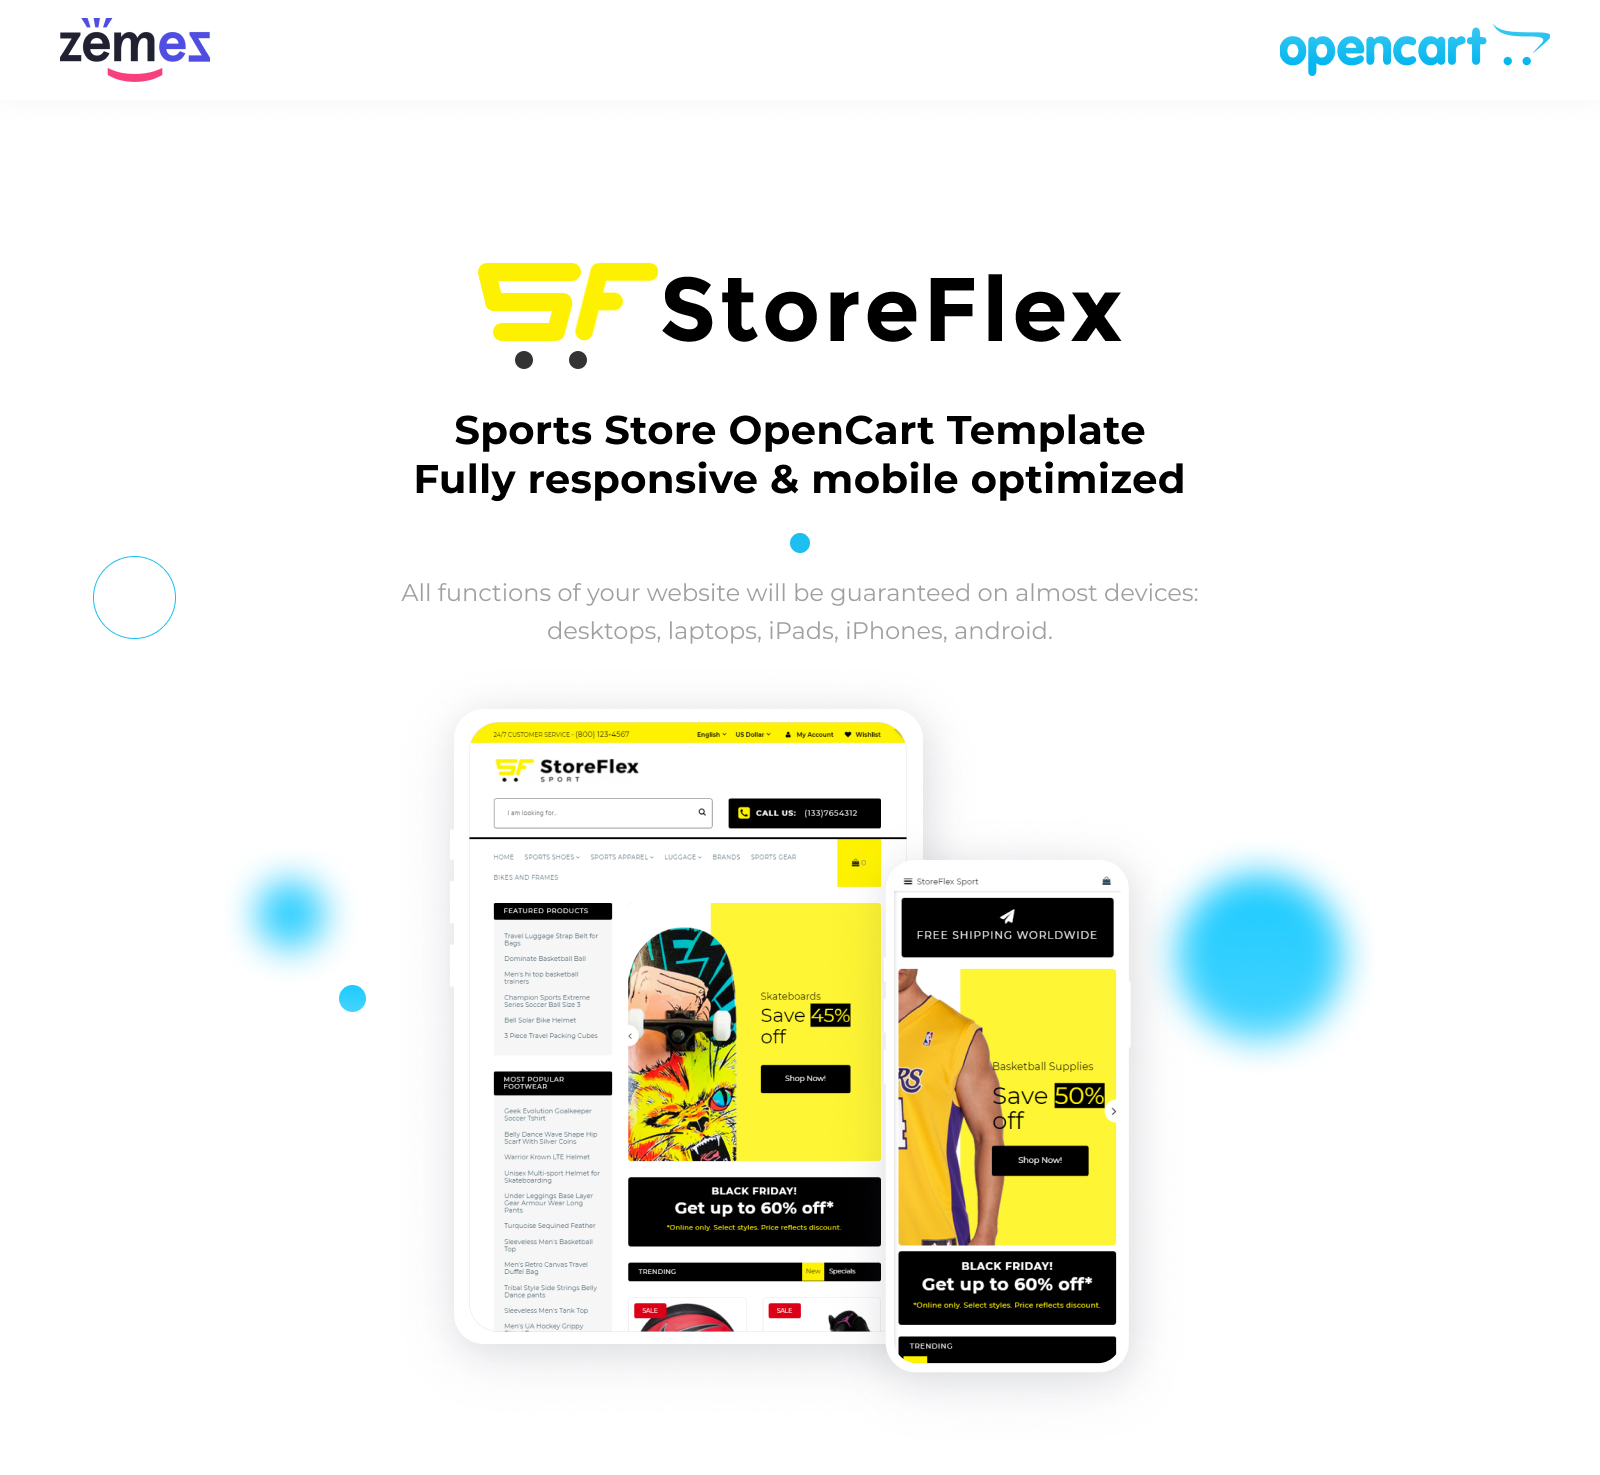 StoreFlex - Sports Store Responsive OpenCart Template